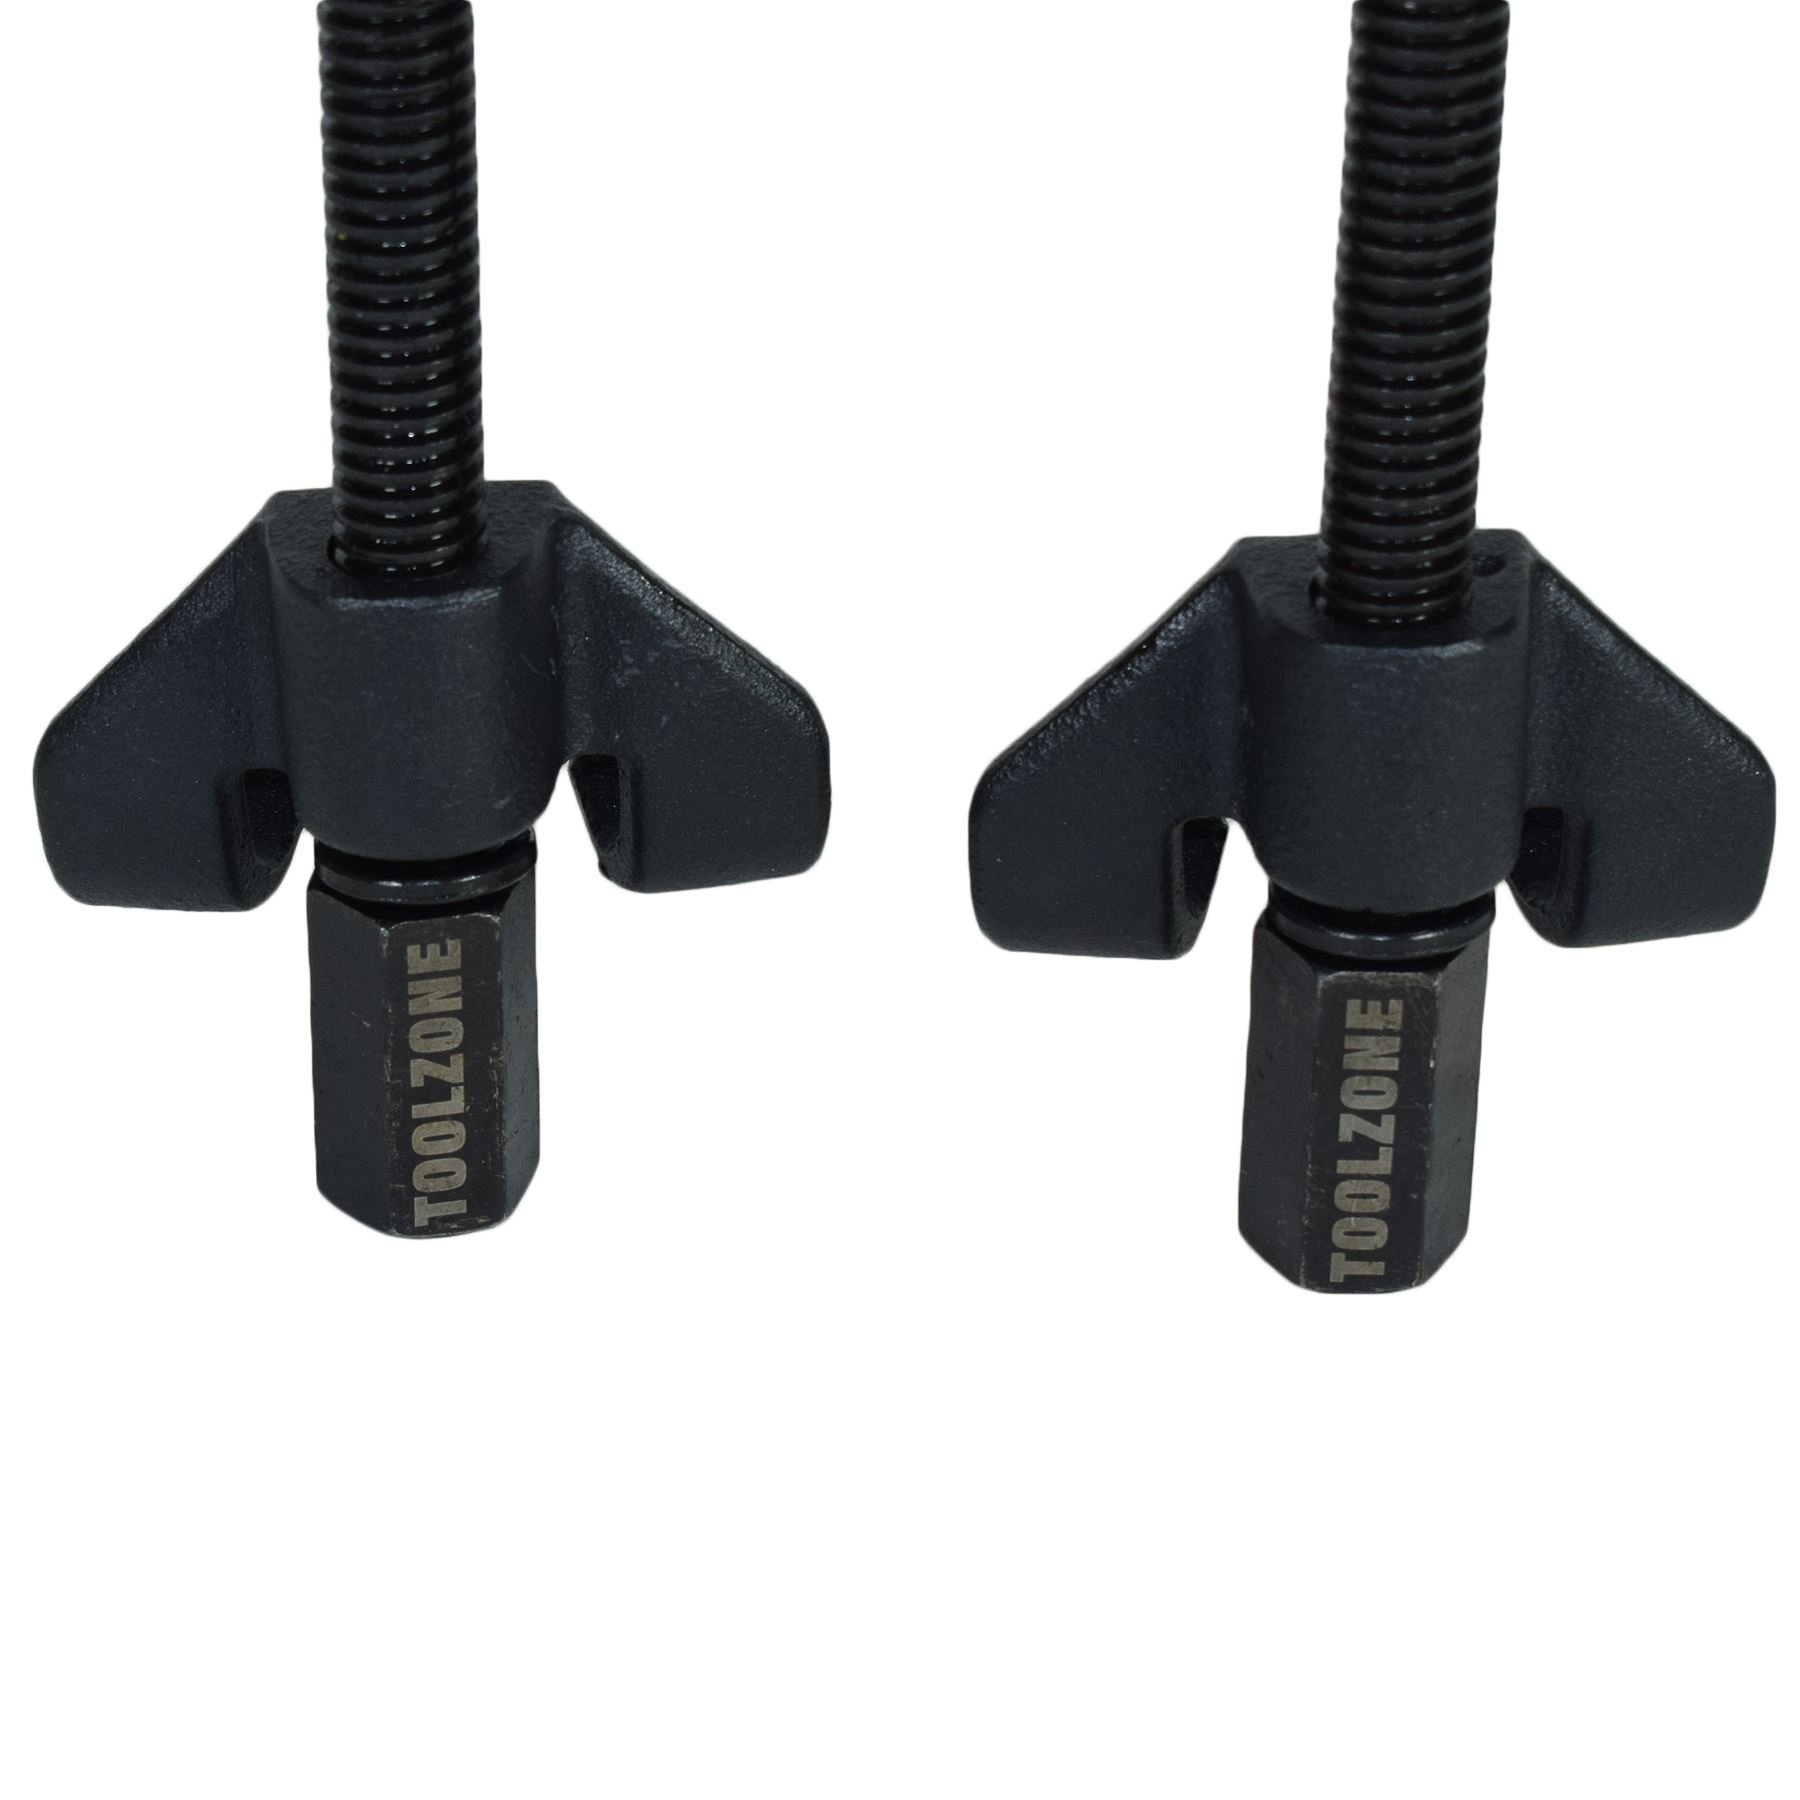 AB Tools-Toolzone 370 x 82mm Coil Spring Compressor Twin Hook Clamp Suspension Struts Clasp by AB Tools-Toolzone (Image #2)